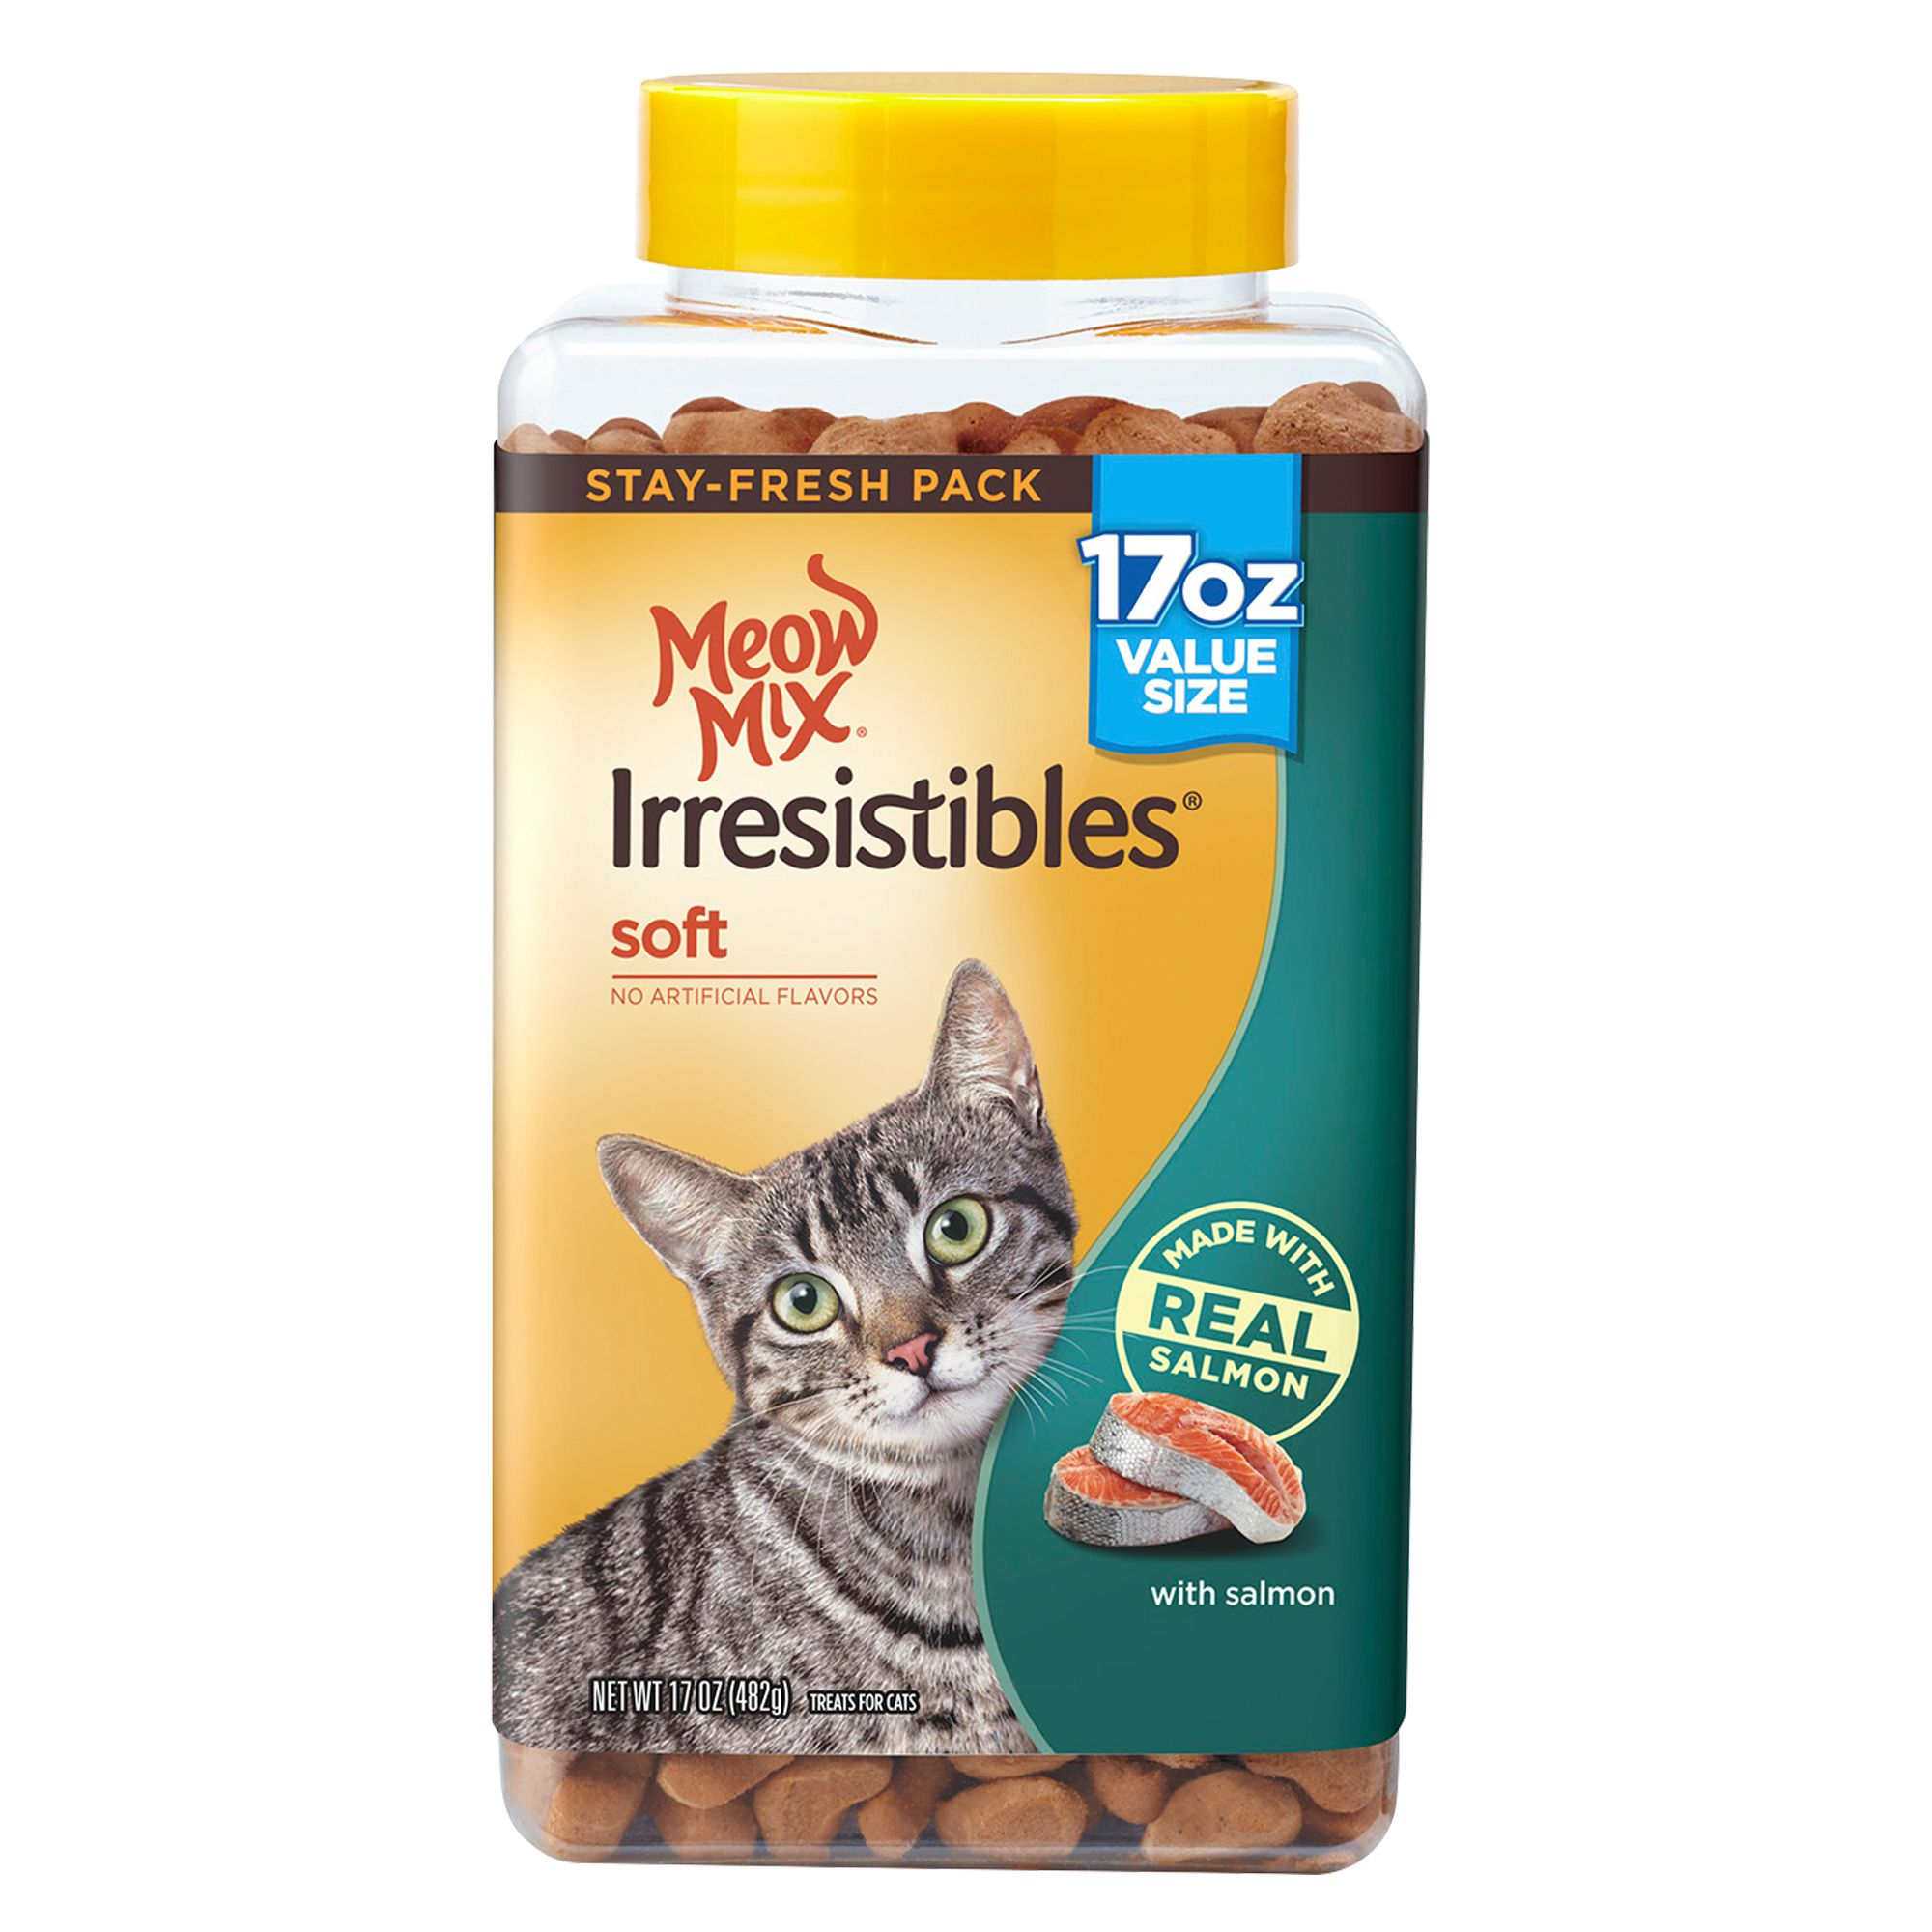 Meow Mix Irresistibles Soft Cat Treat - Salmon size: 17 Oz, Adult, Chicken 5263589